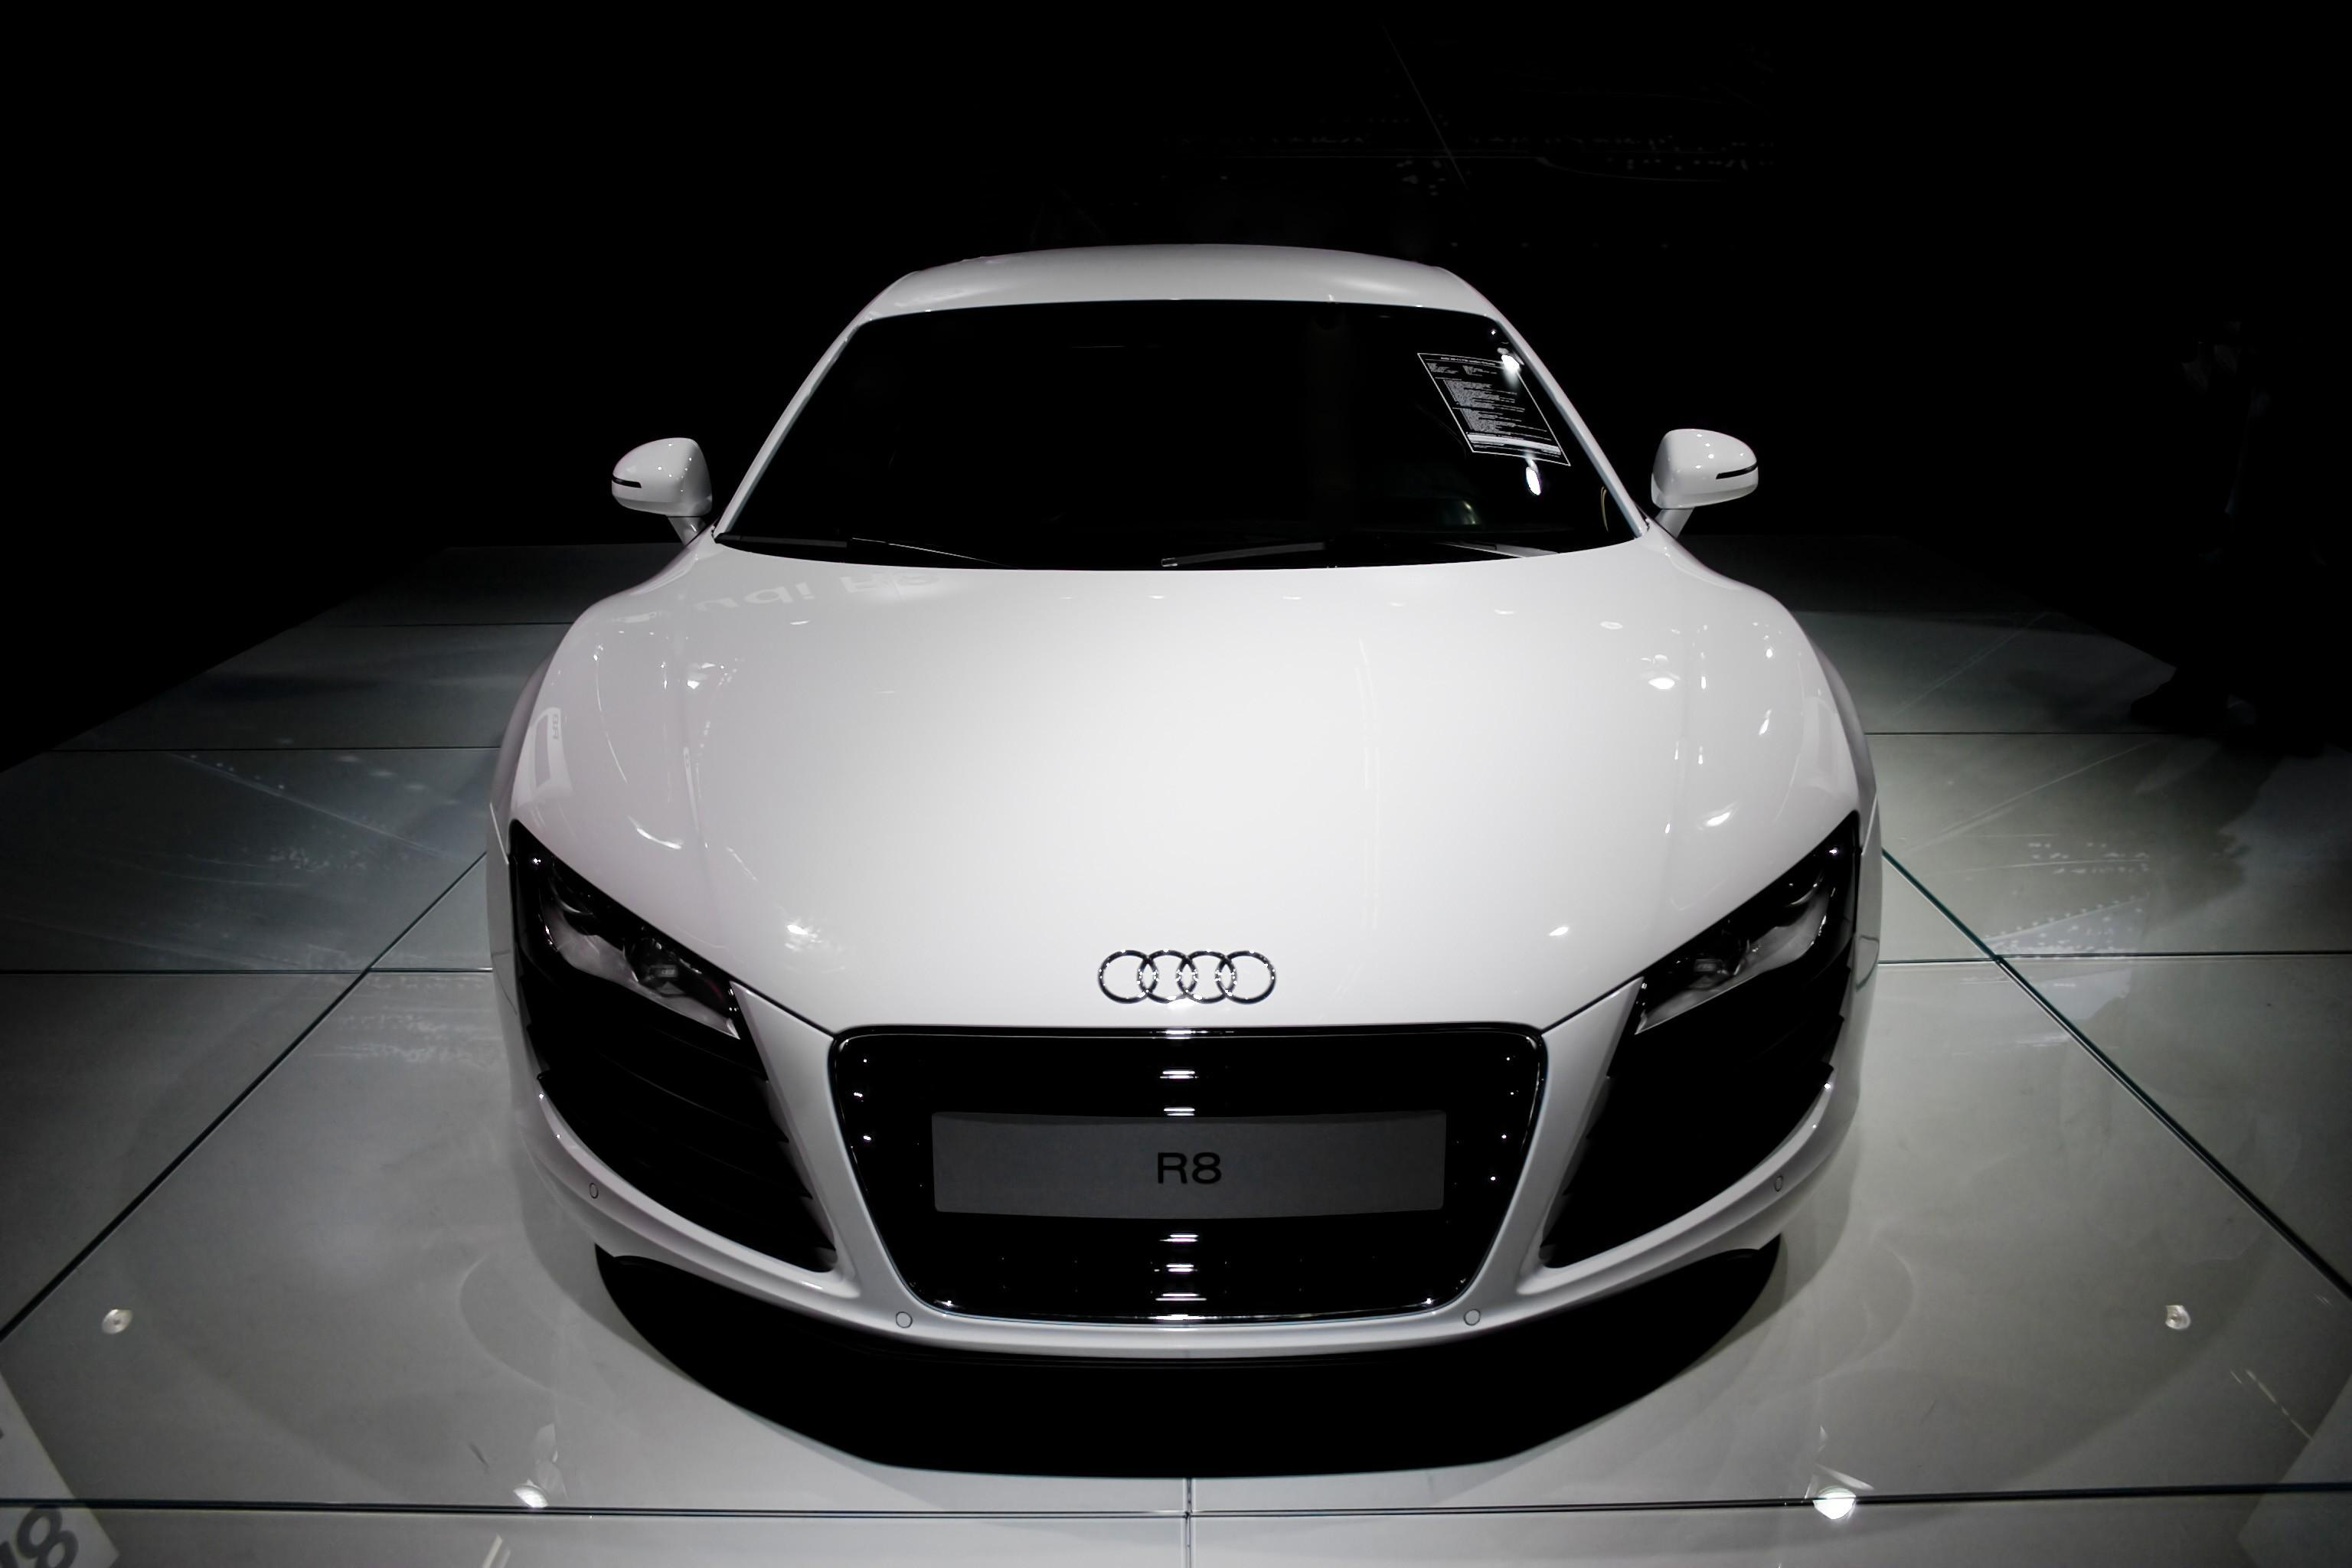 hd audi r8 backgrounds | wallpaper.wiki